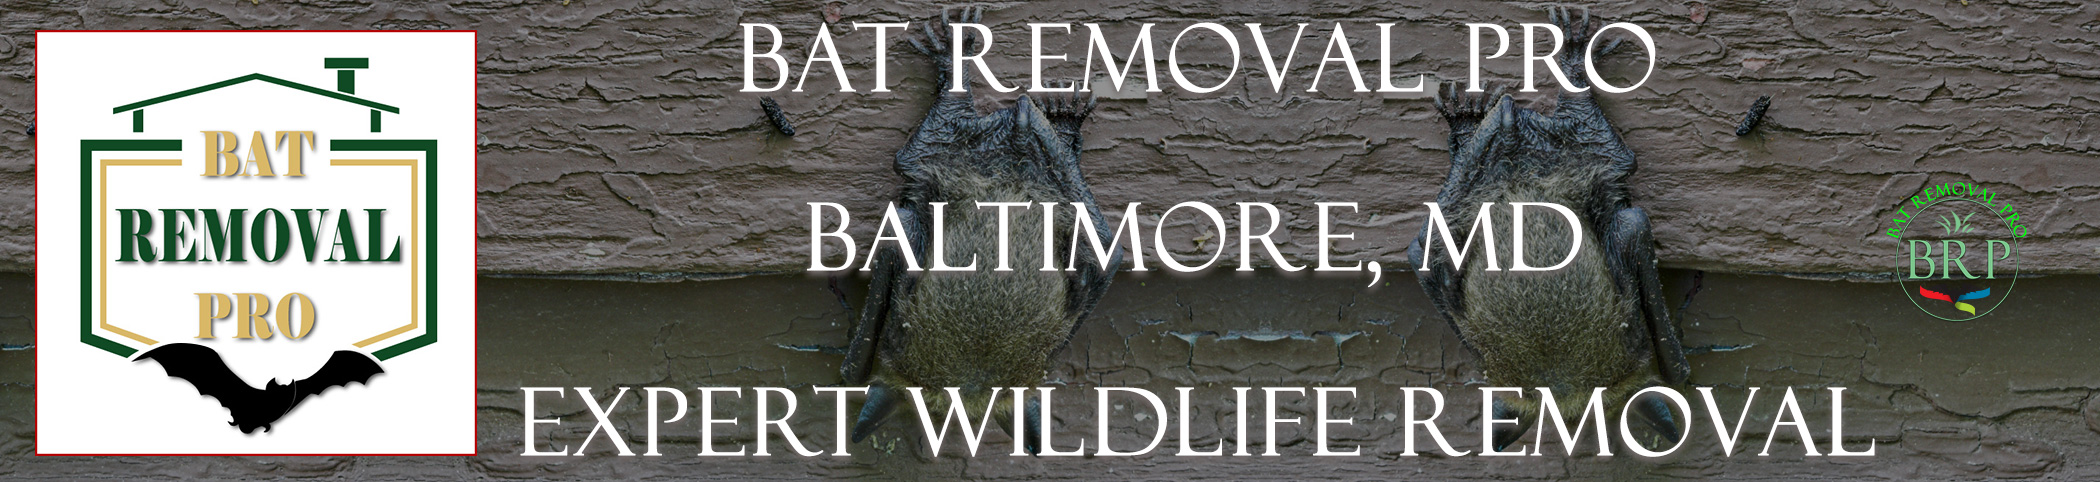 anchorage_alaska_HEADER_IMAGE bat removal pro